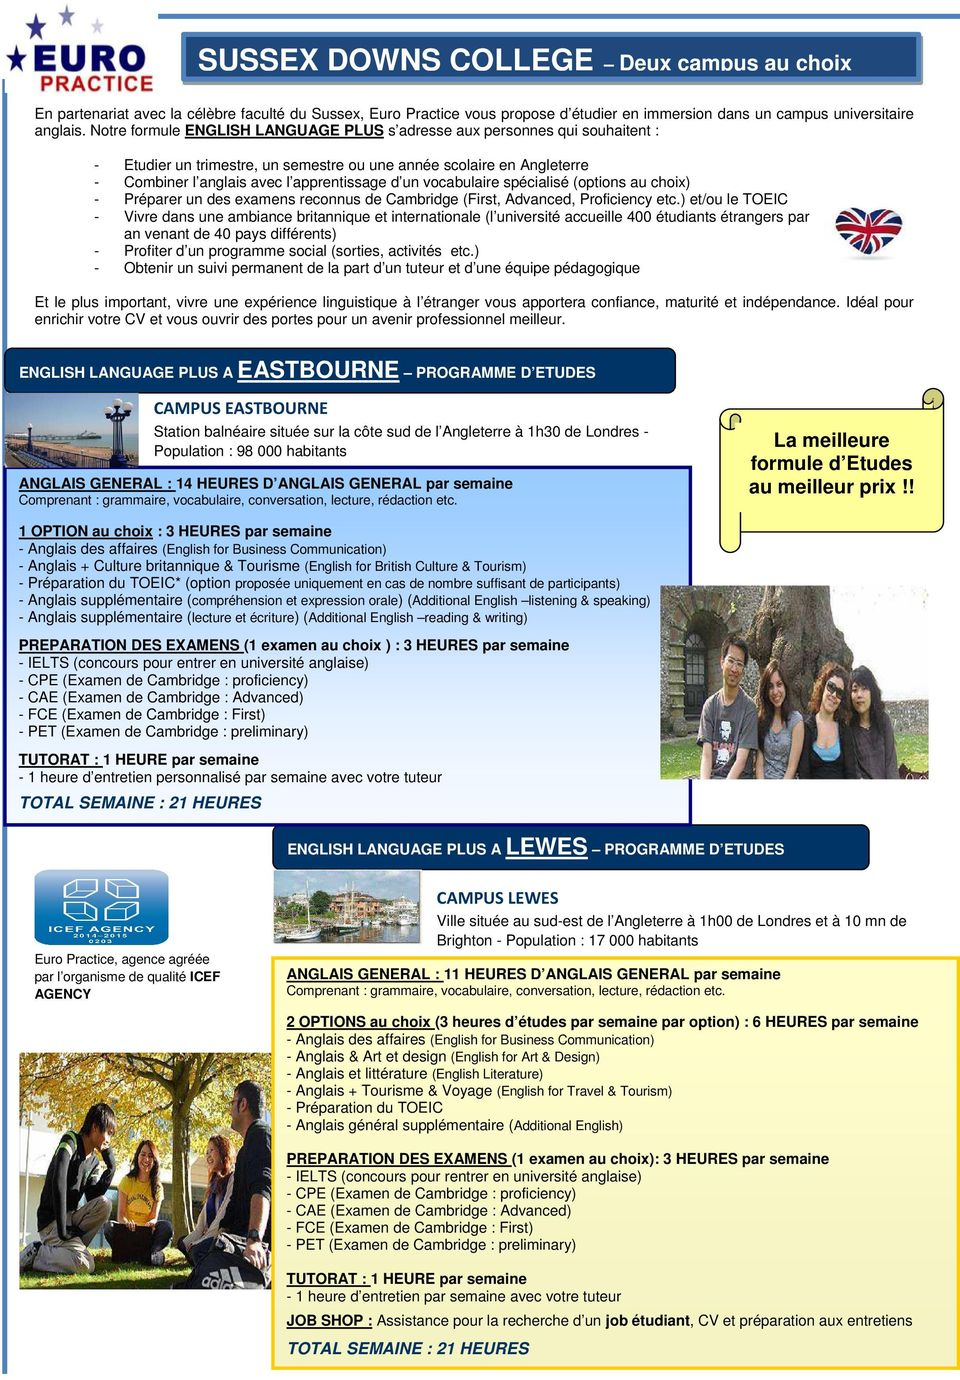 vocabulaire spécialisé (options au choix) - Préparer un des examens reconnus de Cambridge (First, Advanced, Proficiency etc.